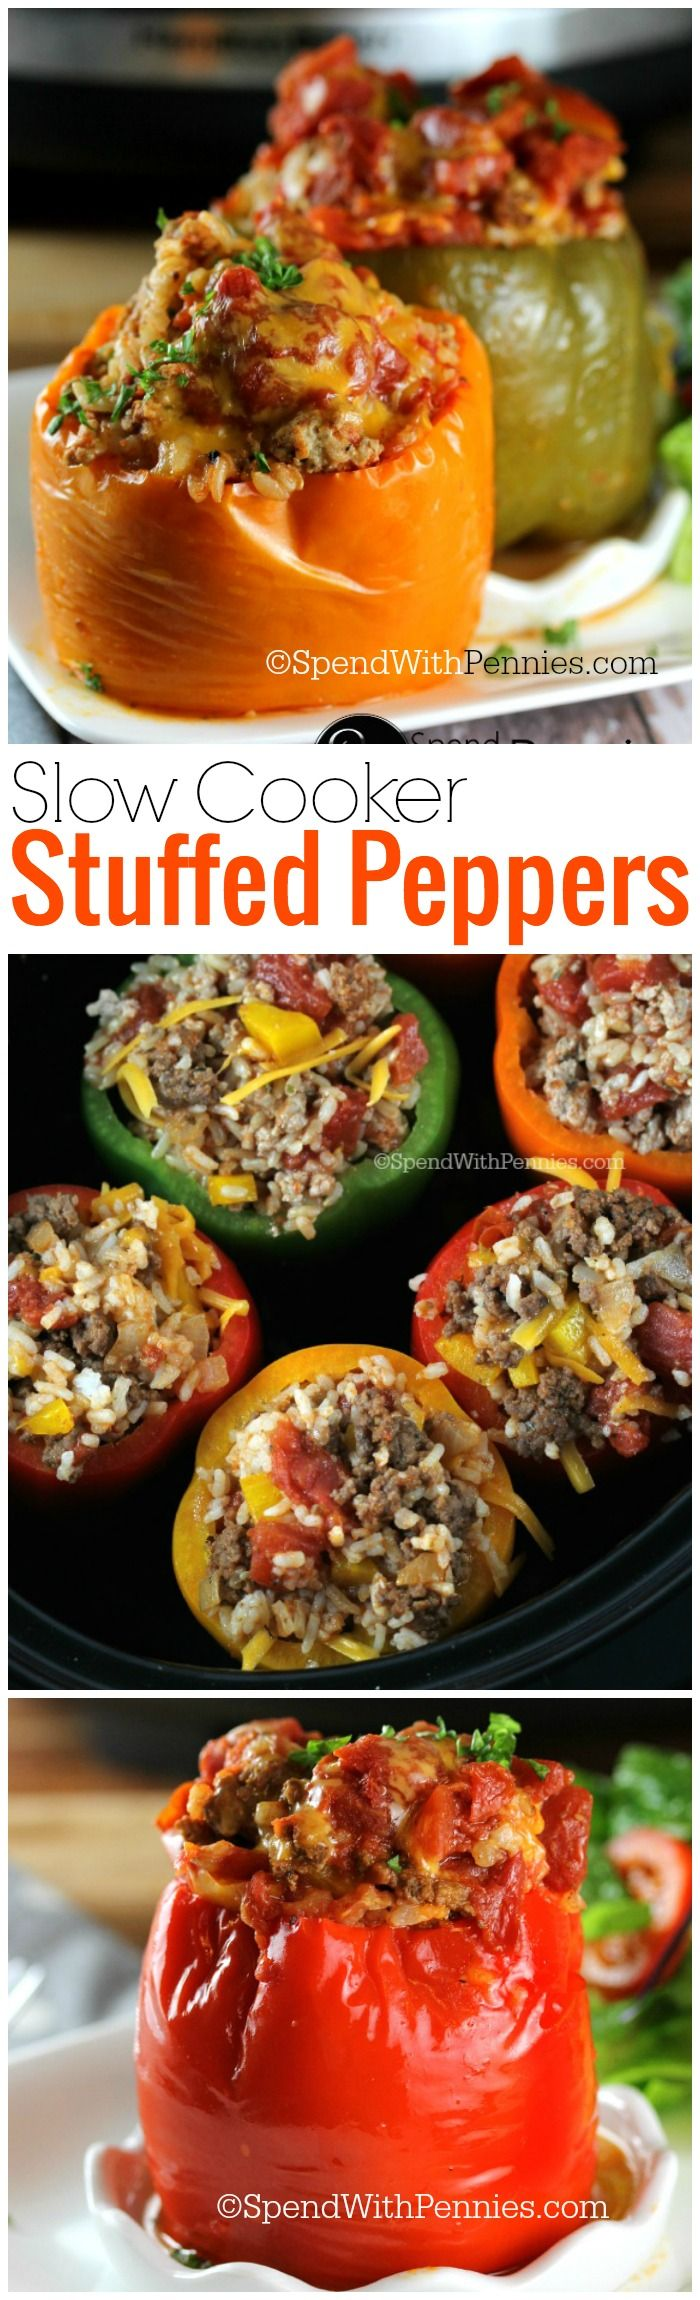 Slow Cooker Stuffed Peppers!  These are deliciously easy to make!